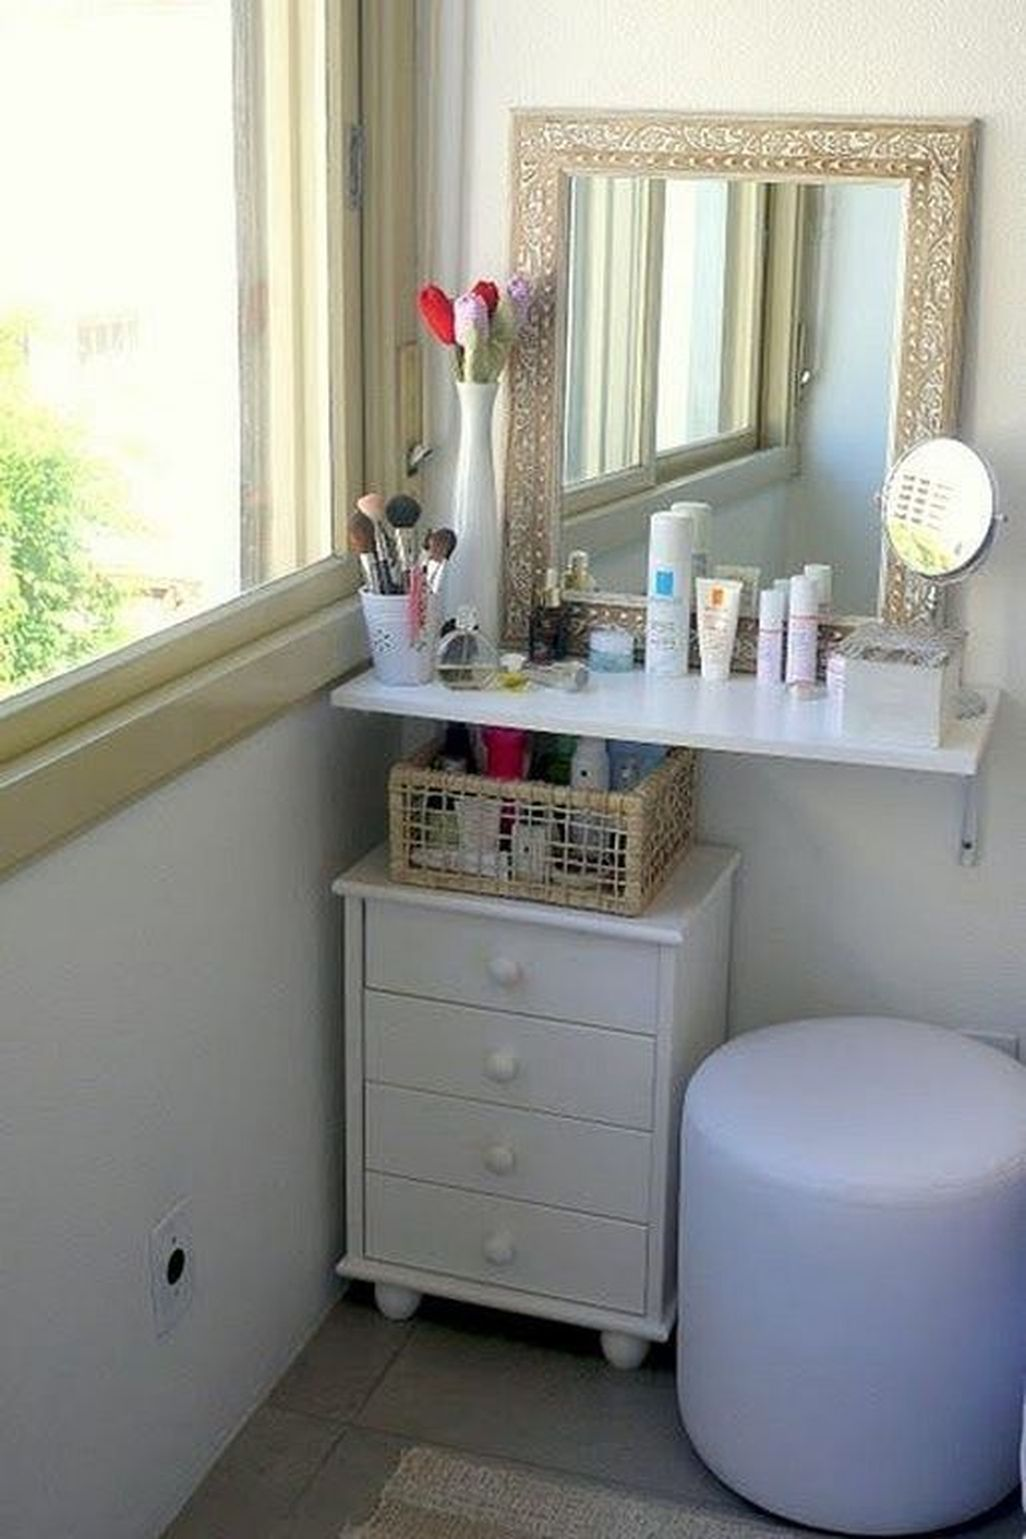 41 Adorable Make Up Vanity Ideas Suitable for Small Space images